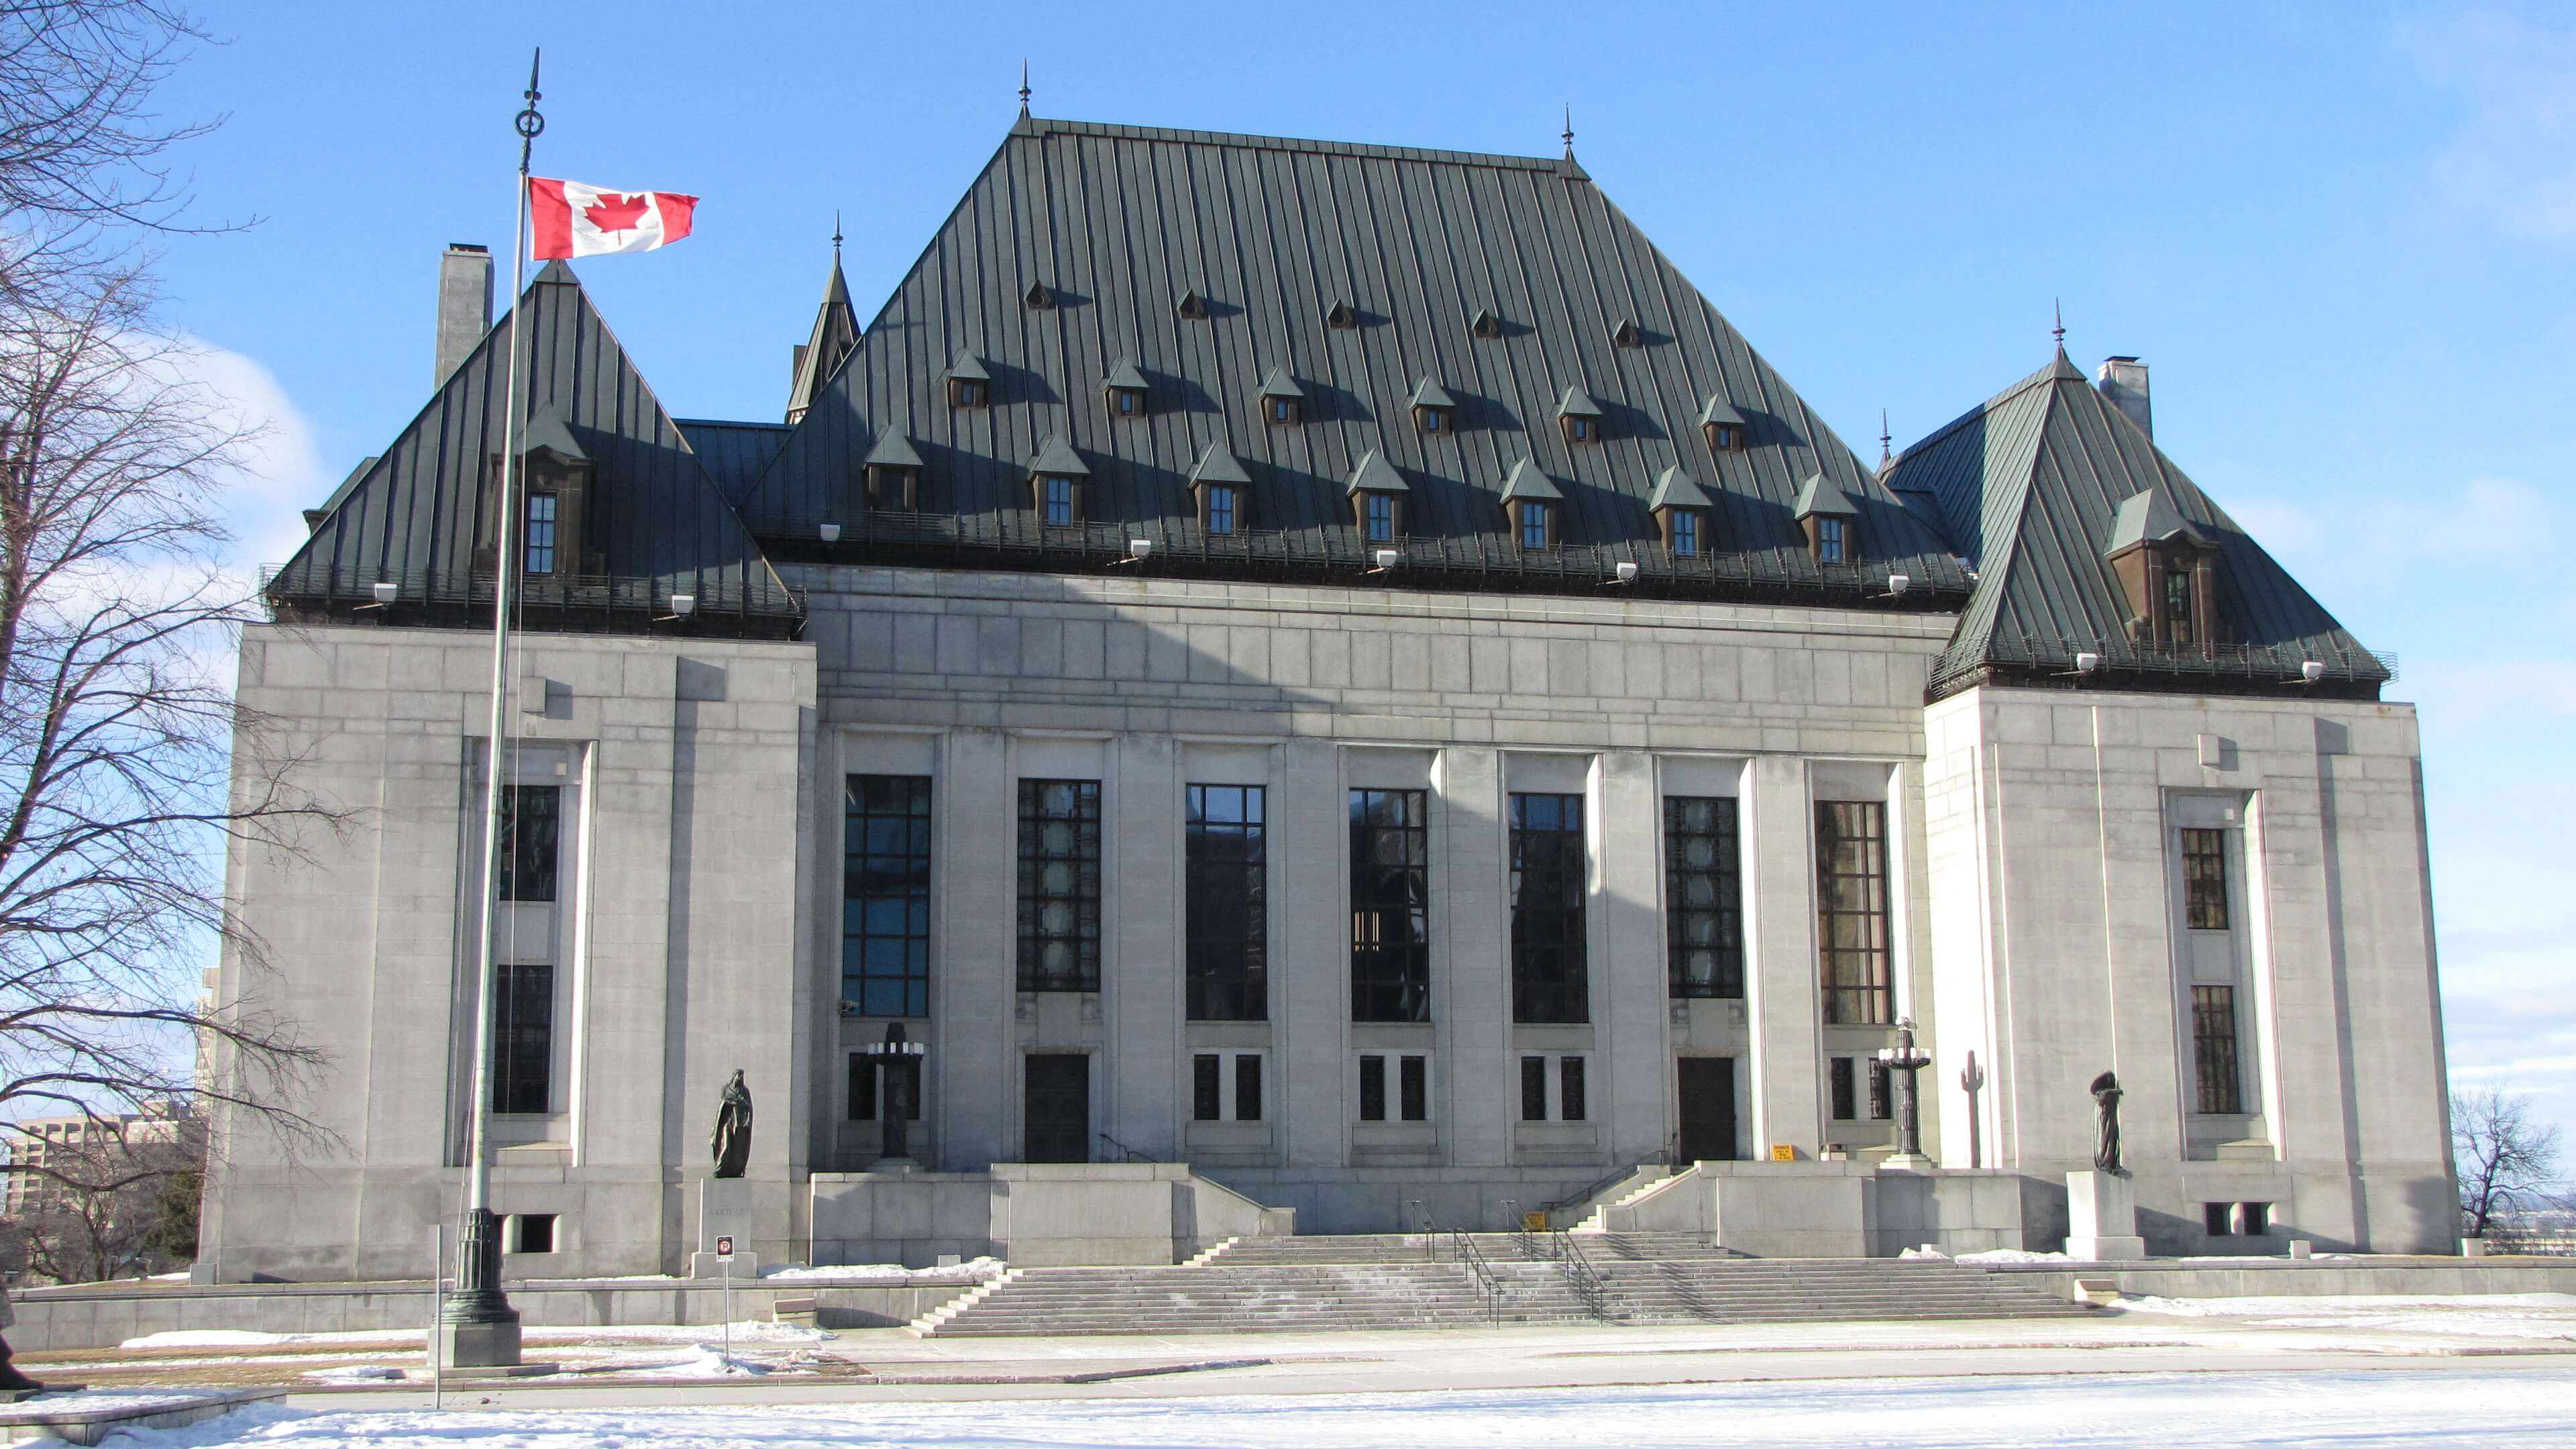 Reaching Equal Justice: An Invitation to Envision and Act (Report of the Canadian Bar Association's Access to Justice Committee, August 2013)